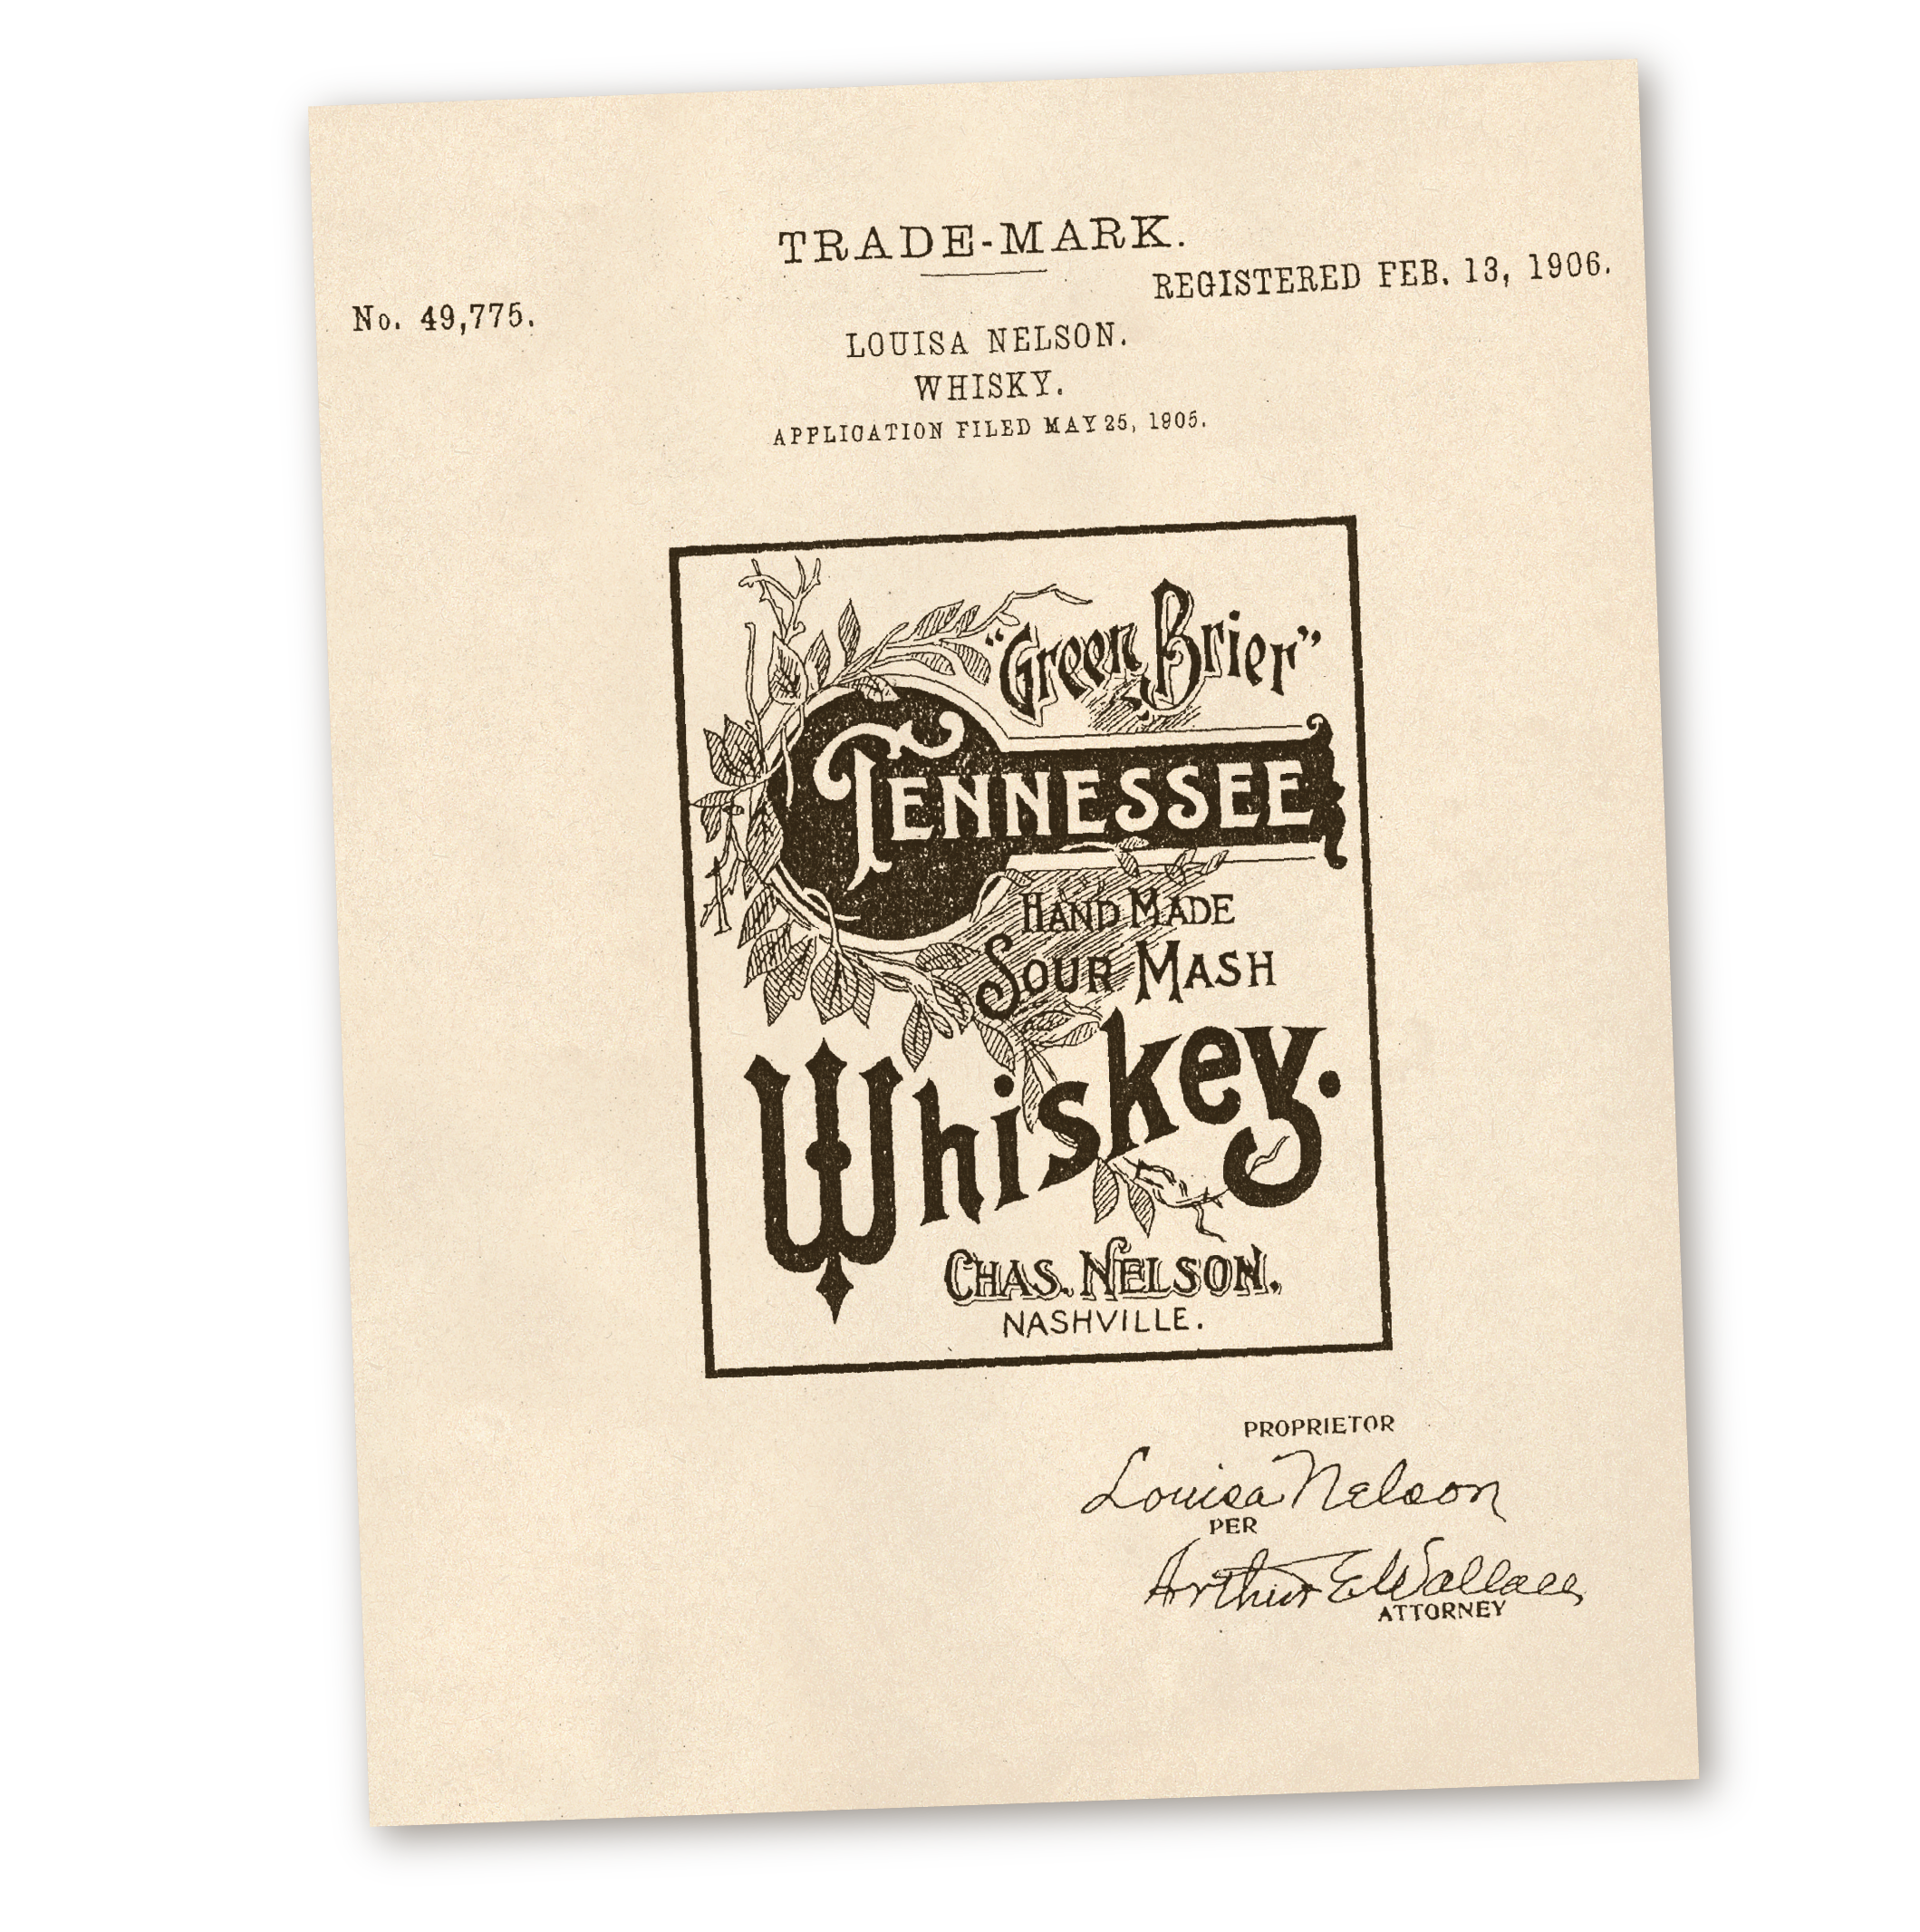 Nelson's Green Brier Distillery Tennessee Whiskey Trademark